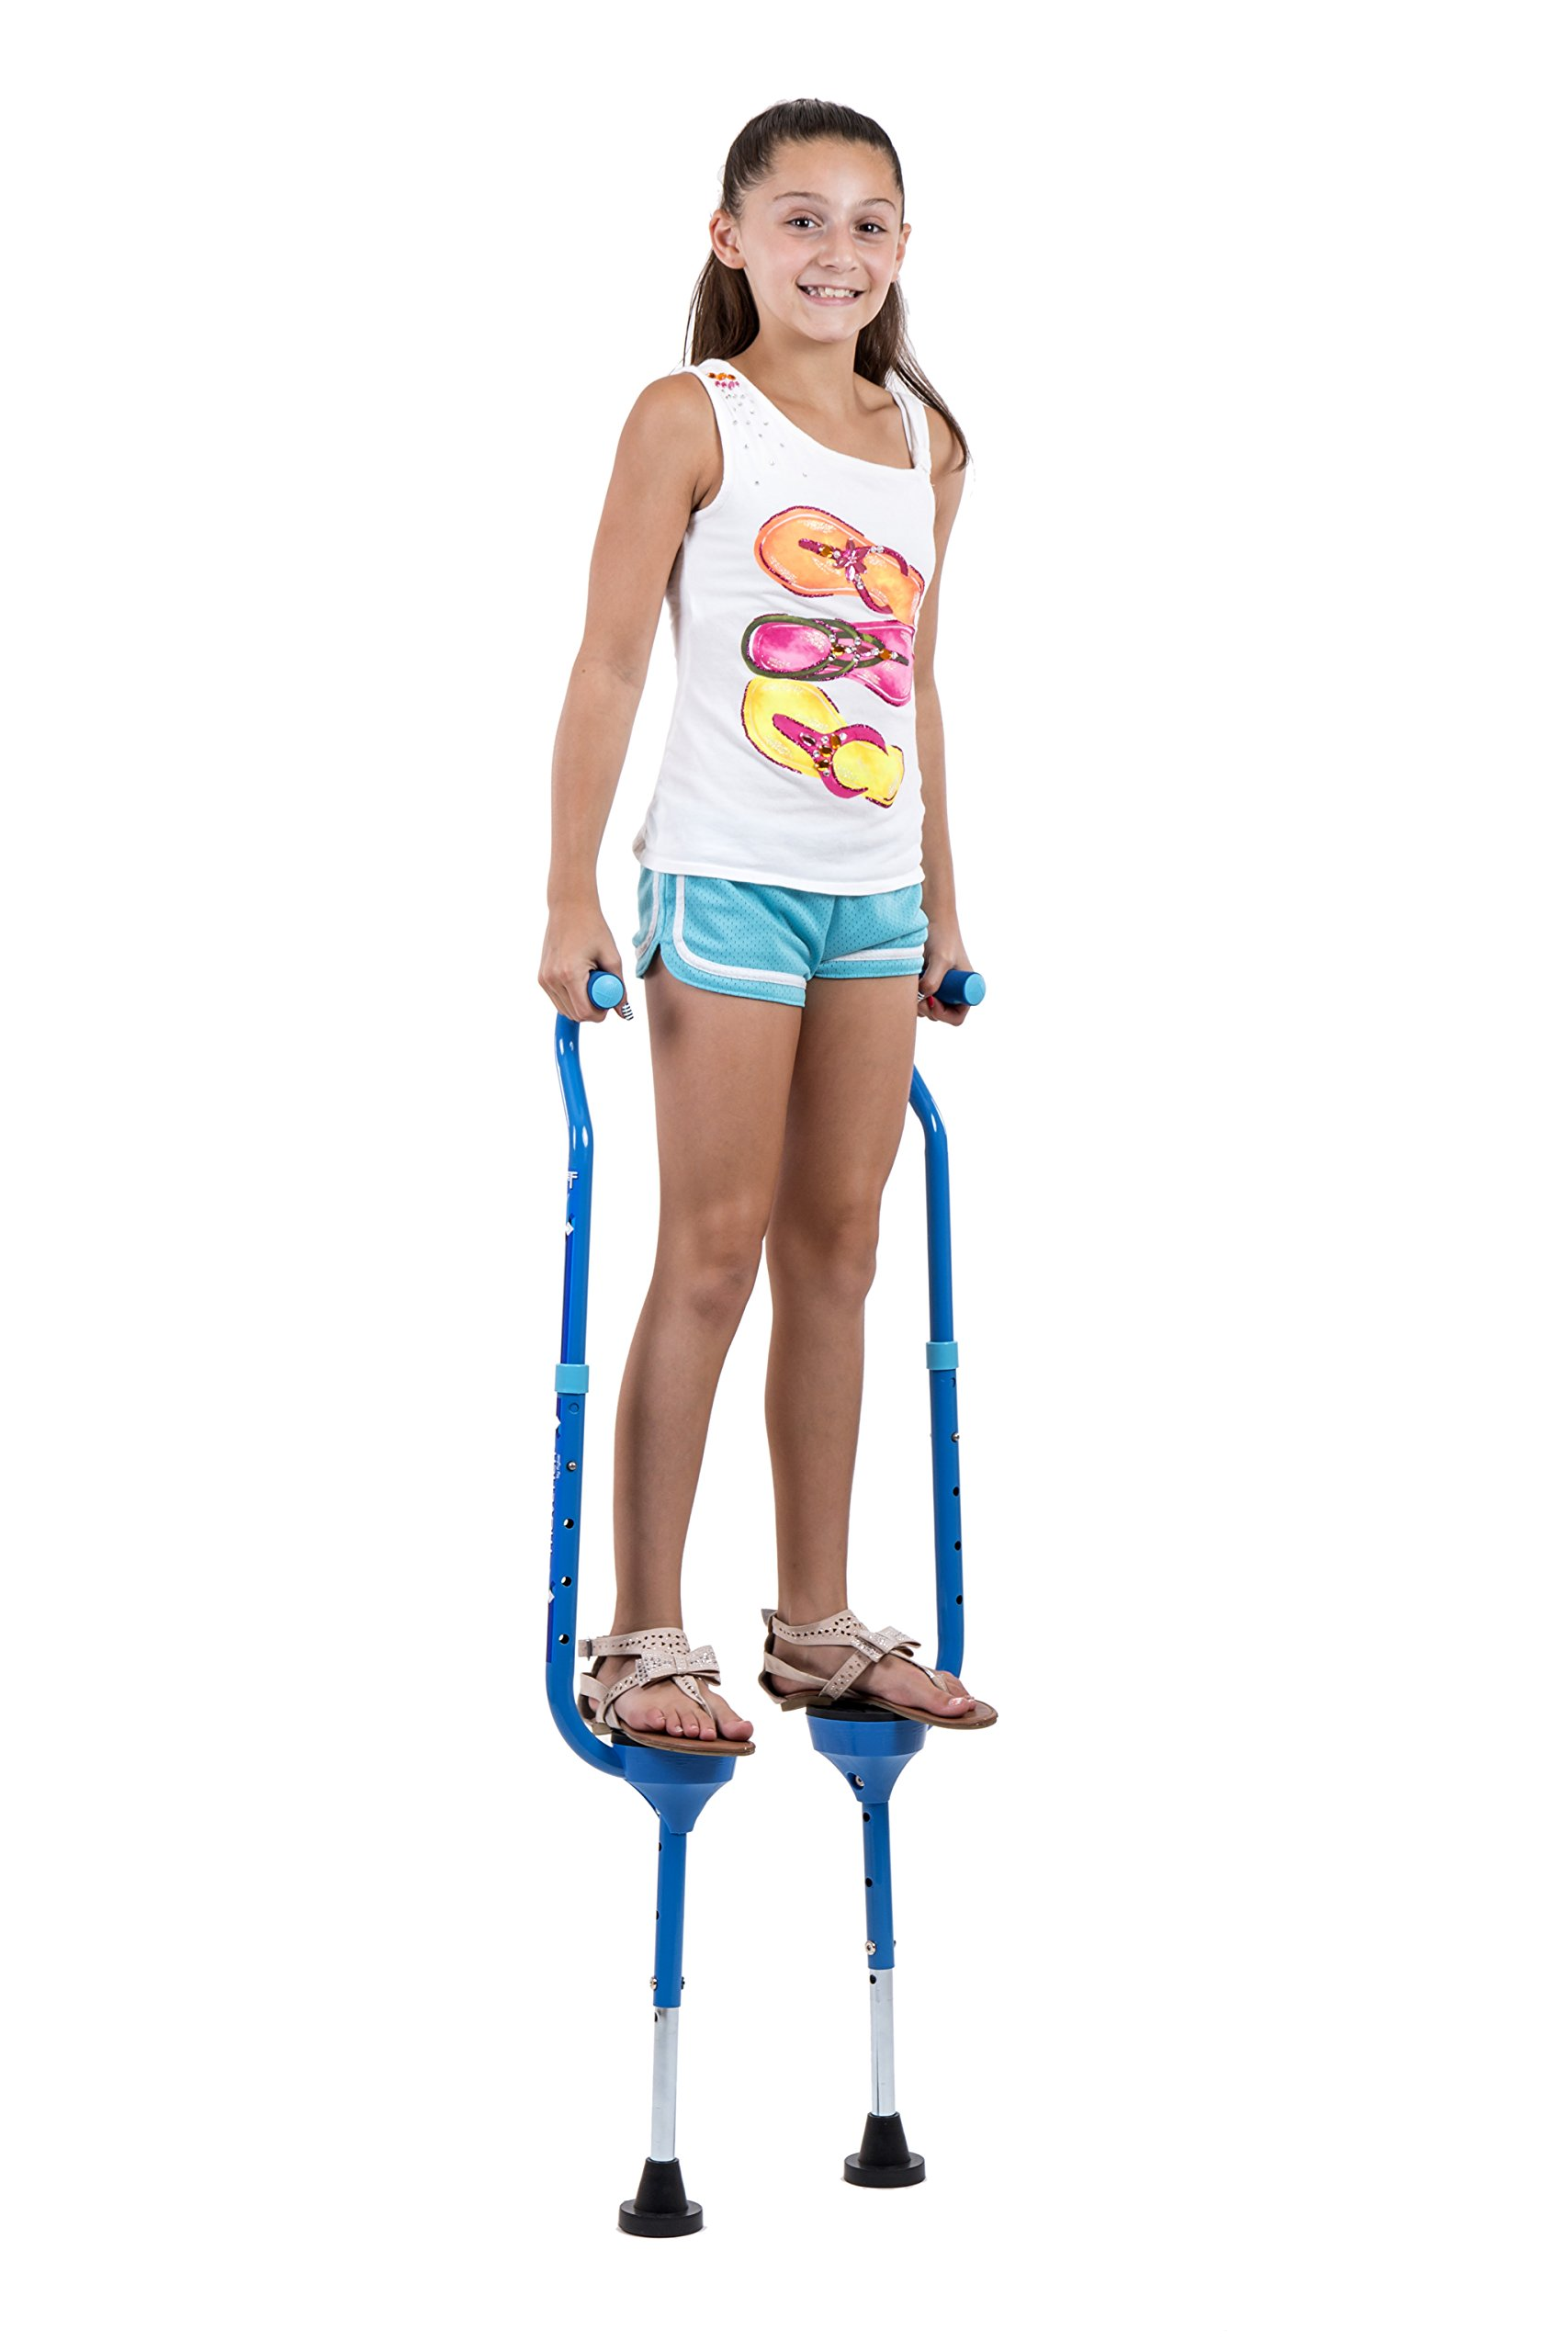 Flybar Maverick Walking Stilts for Kids Ages 5 +, Weights Up to 190 Lbs - Adjustable Foam Handles with Wide Stance Foot Pegs - Fun Outdoor Toys for Girls & Boys by Flybar (Image #7)